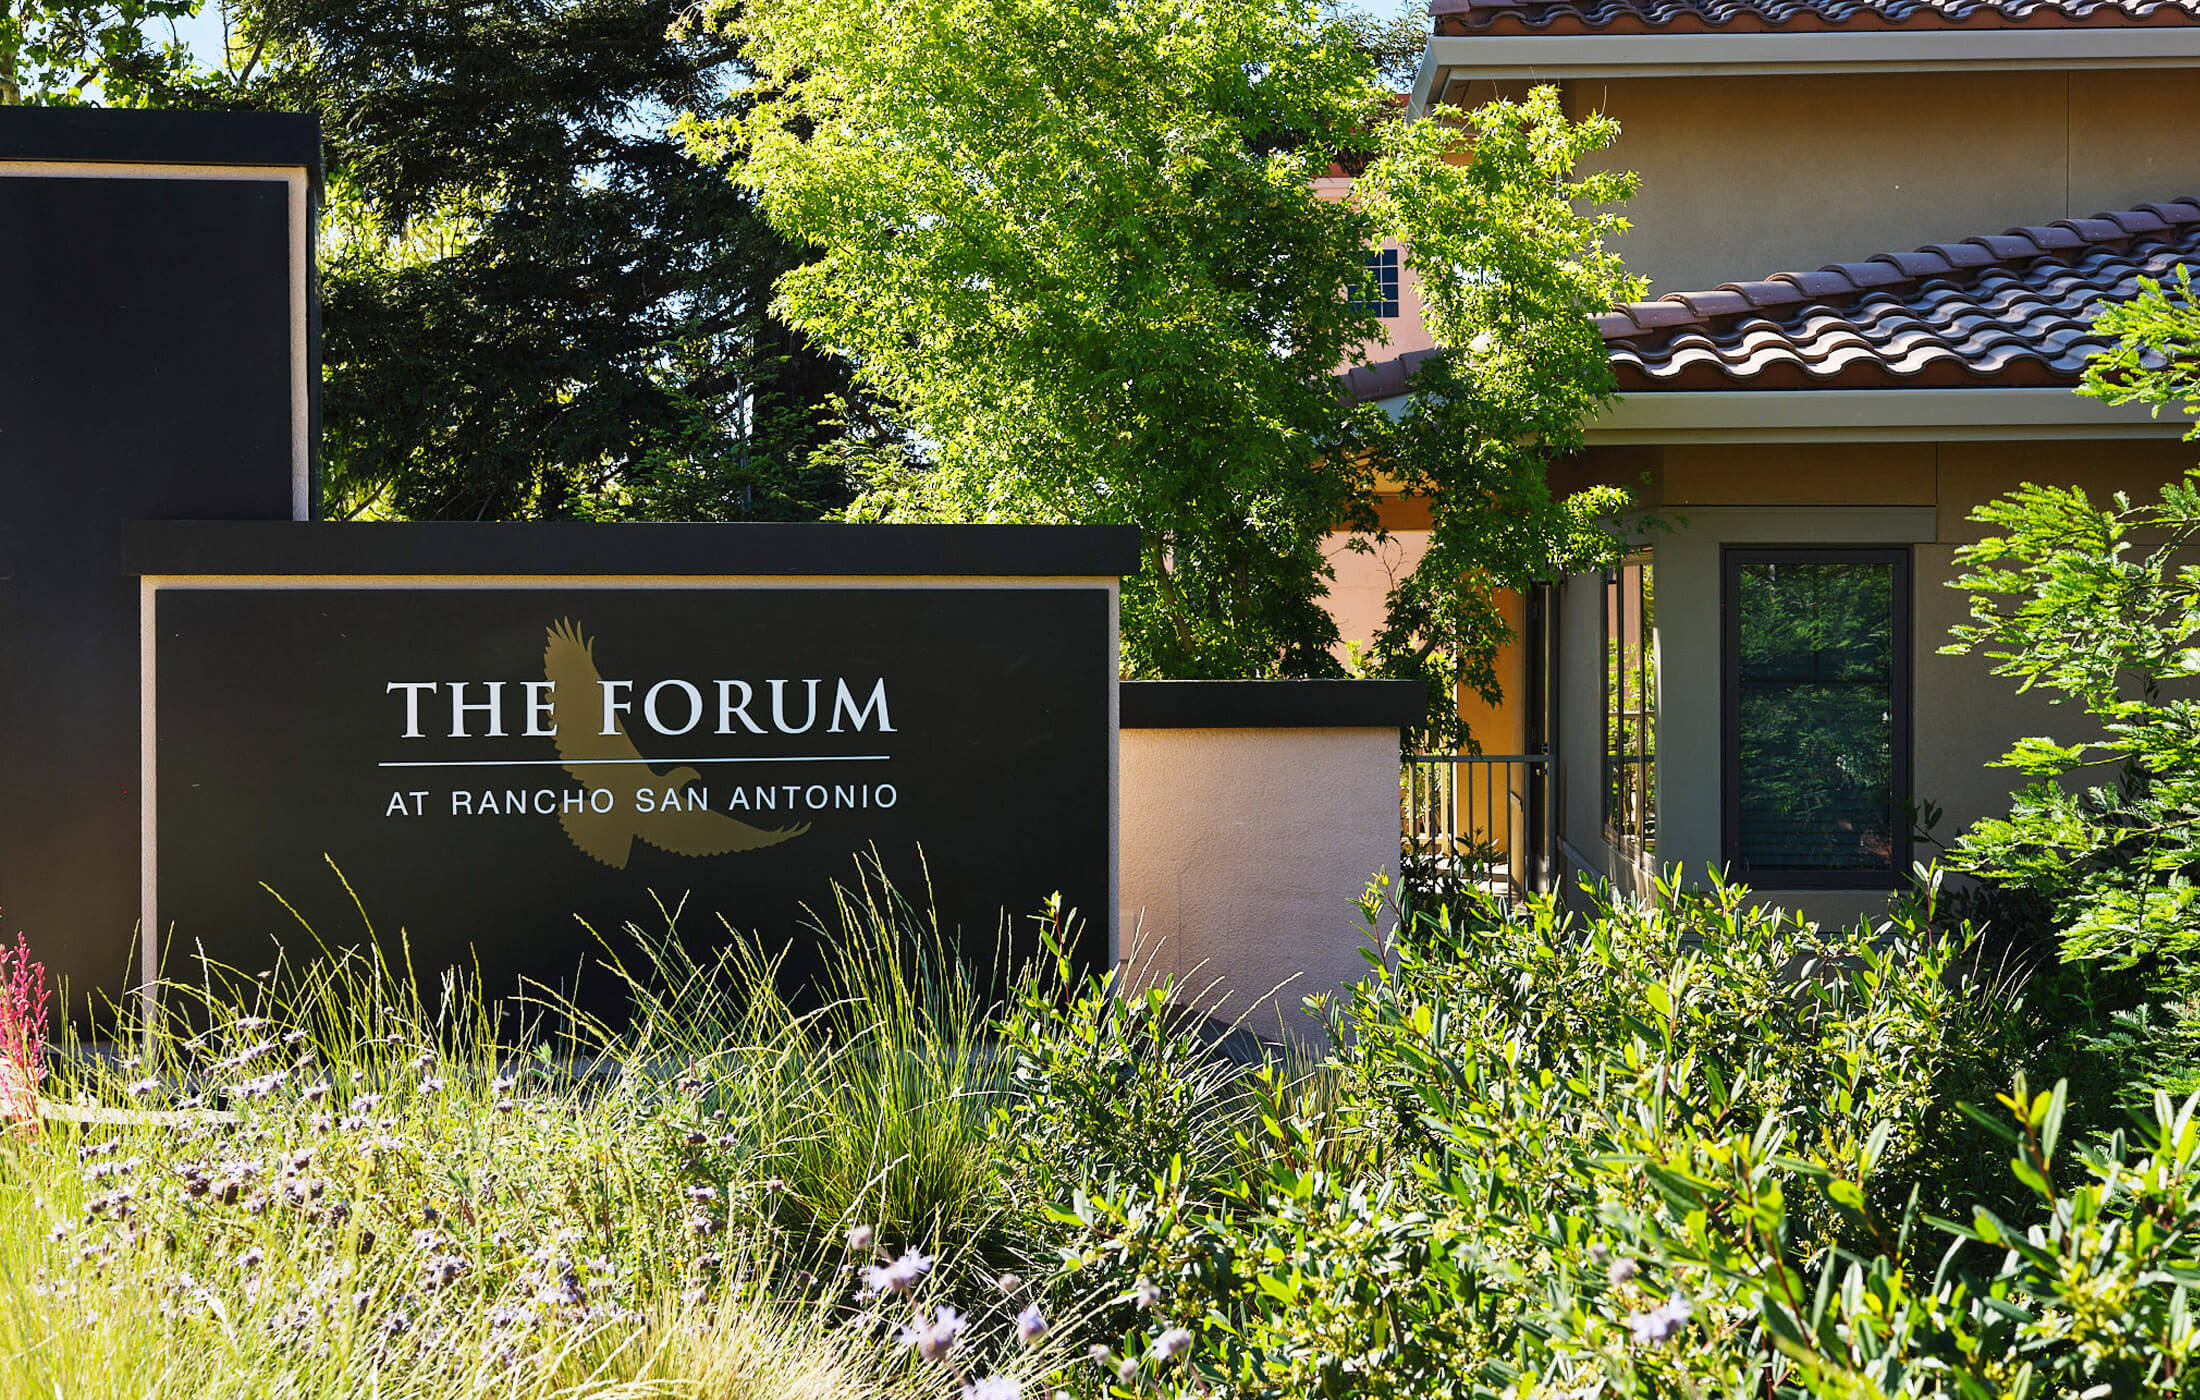 The Forum entrance sign